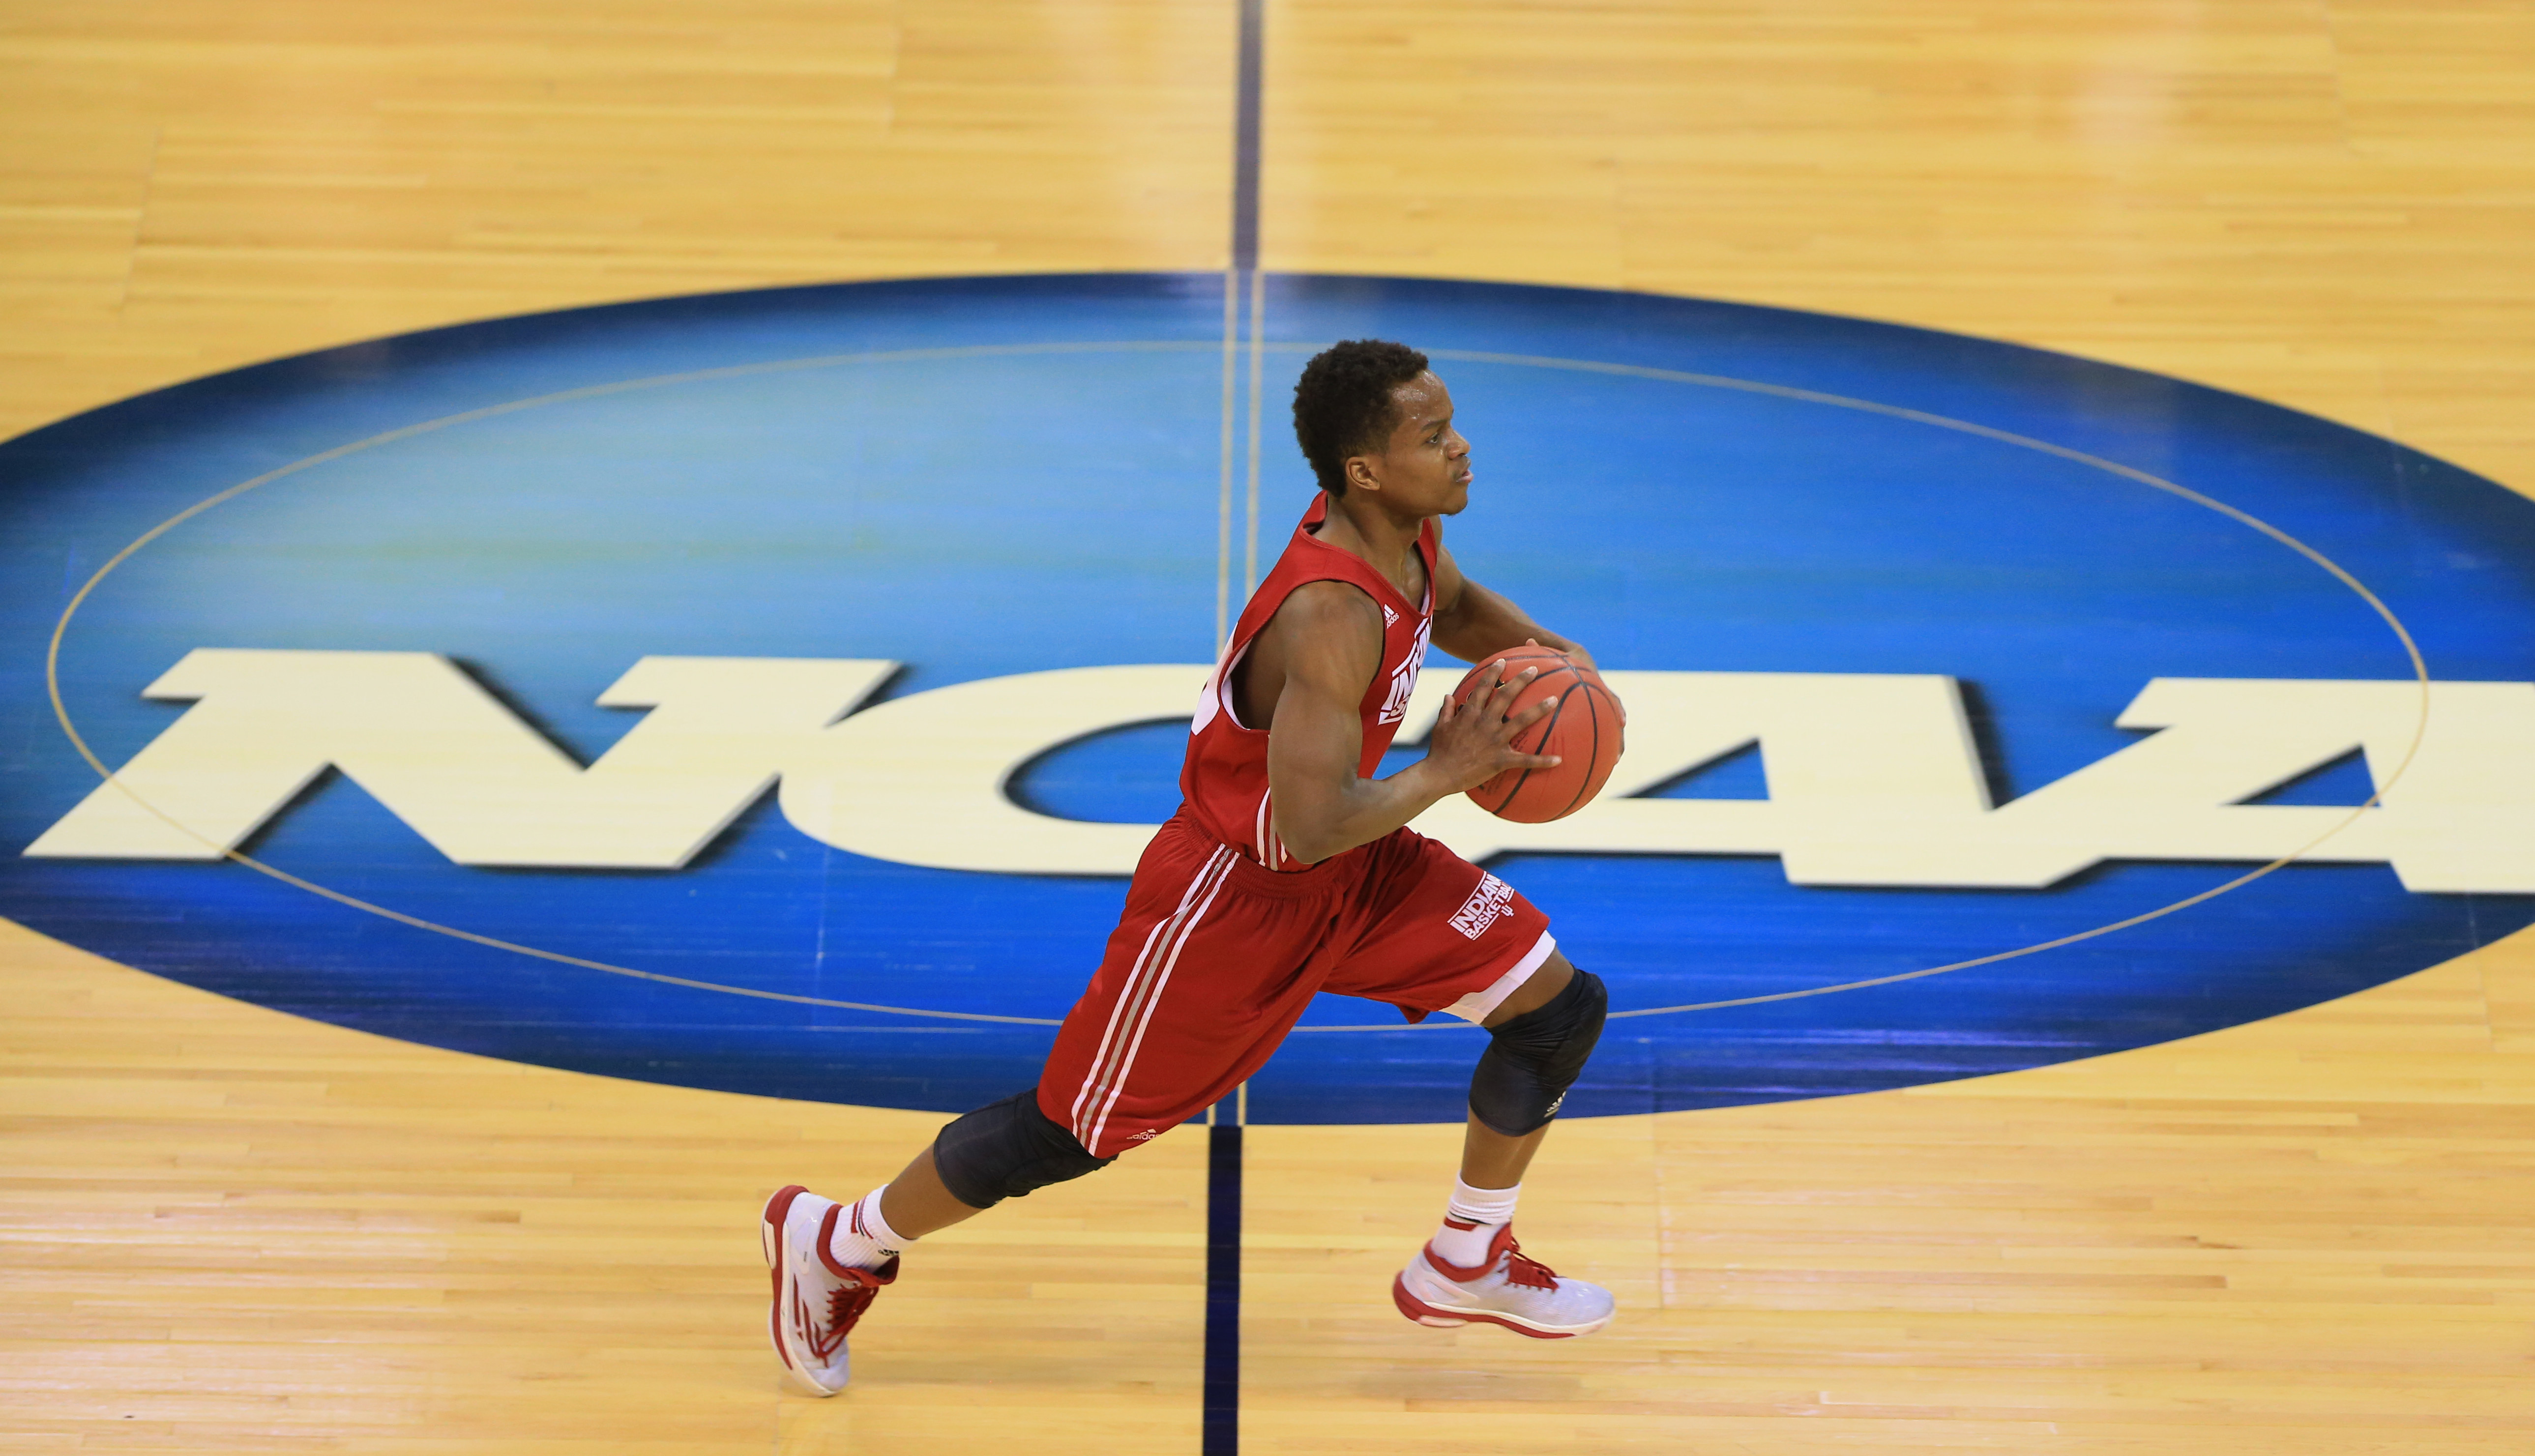 Indiana's Kevin Yogi Ferrell (11) runs past the NCAA logo during practice for an NCAA college basketball tournament second round game in Omaha, Neb., Thursday, March 19, 2015. Indiana plays Wichita State on Friday. (AP Photo/Nati Harnik)